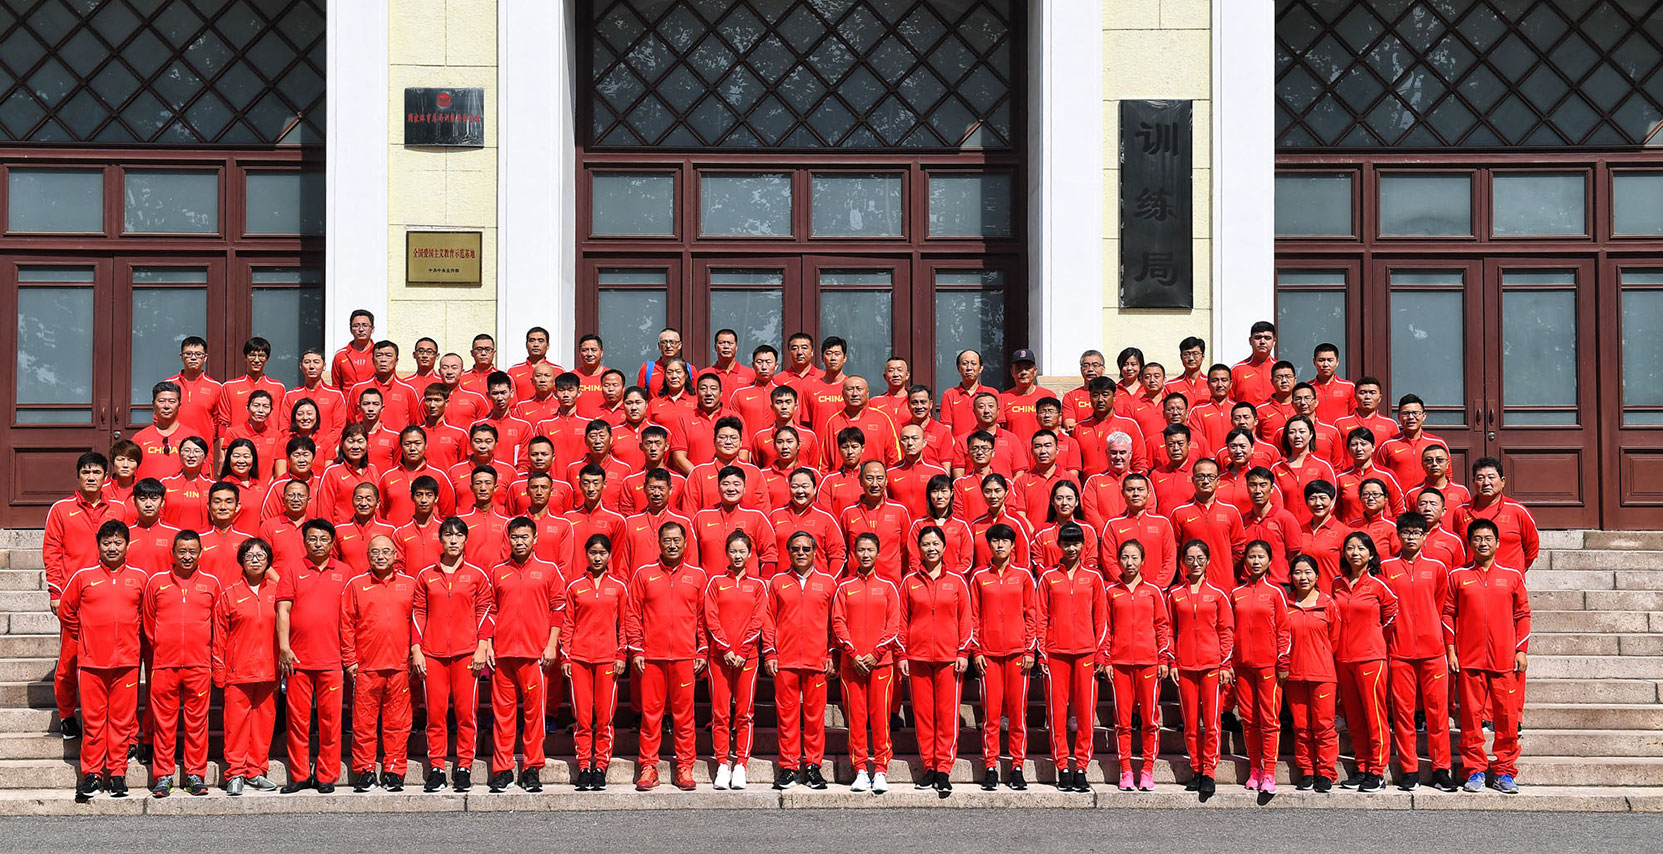 The national athletics team in 2019 IAAF World Championships